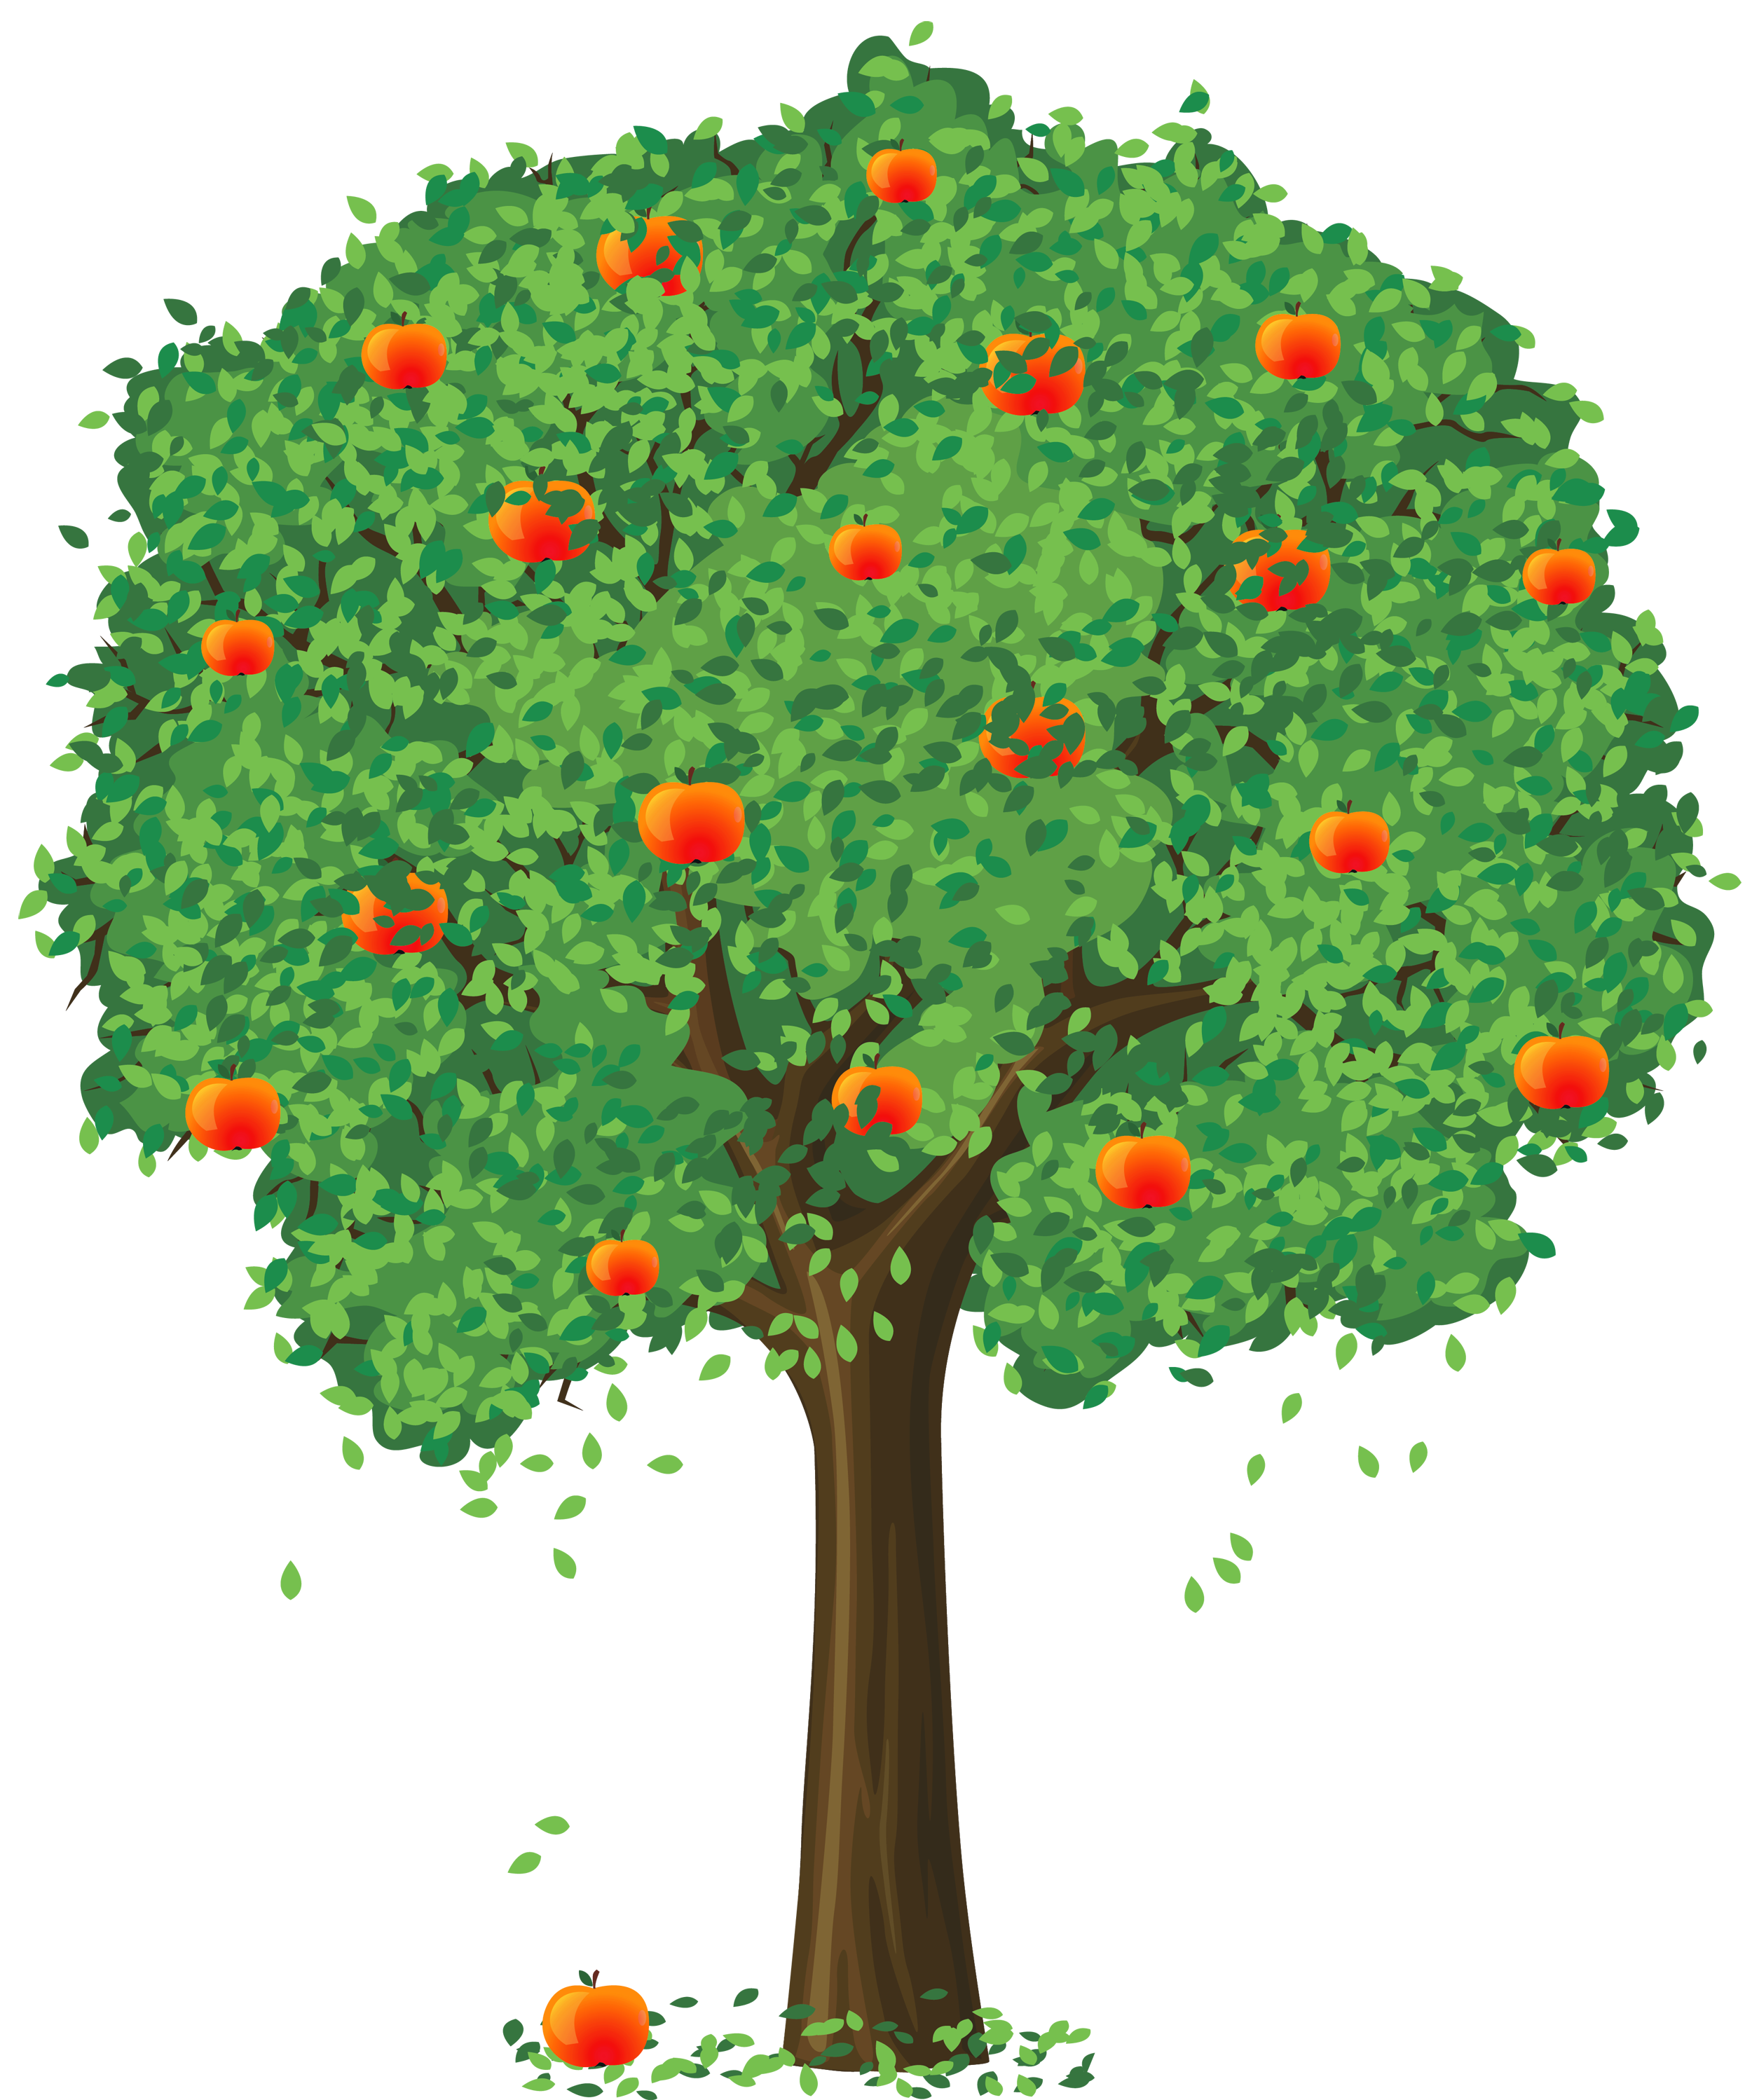 Painted Apple Tree Png Clipart-Painted Apple Tree Png Clipart-8